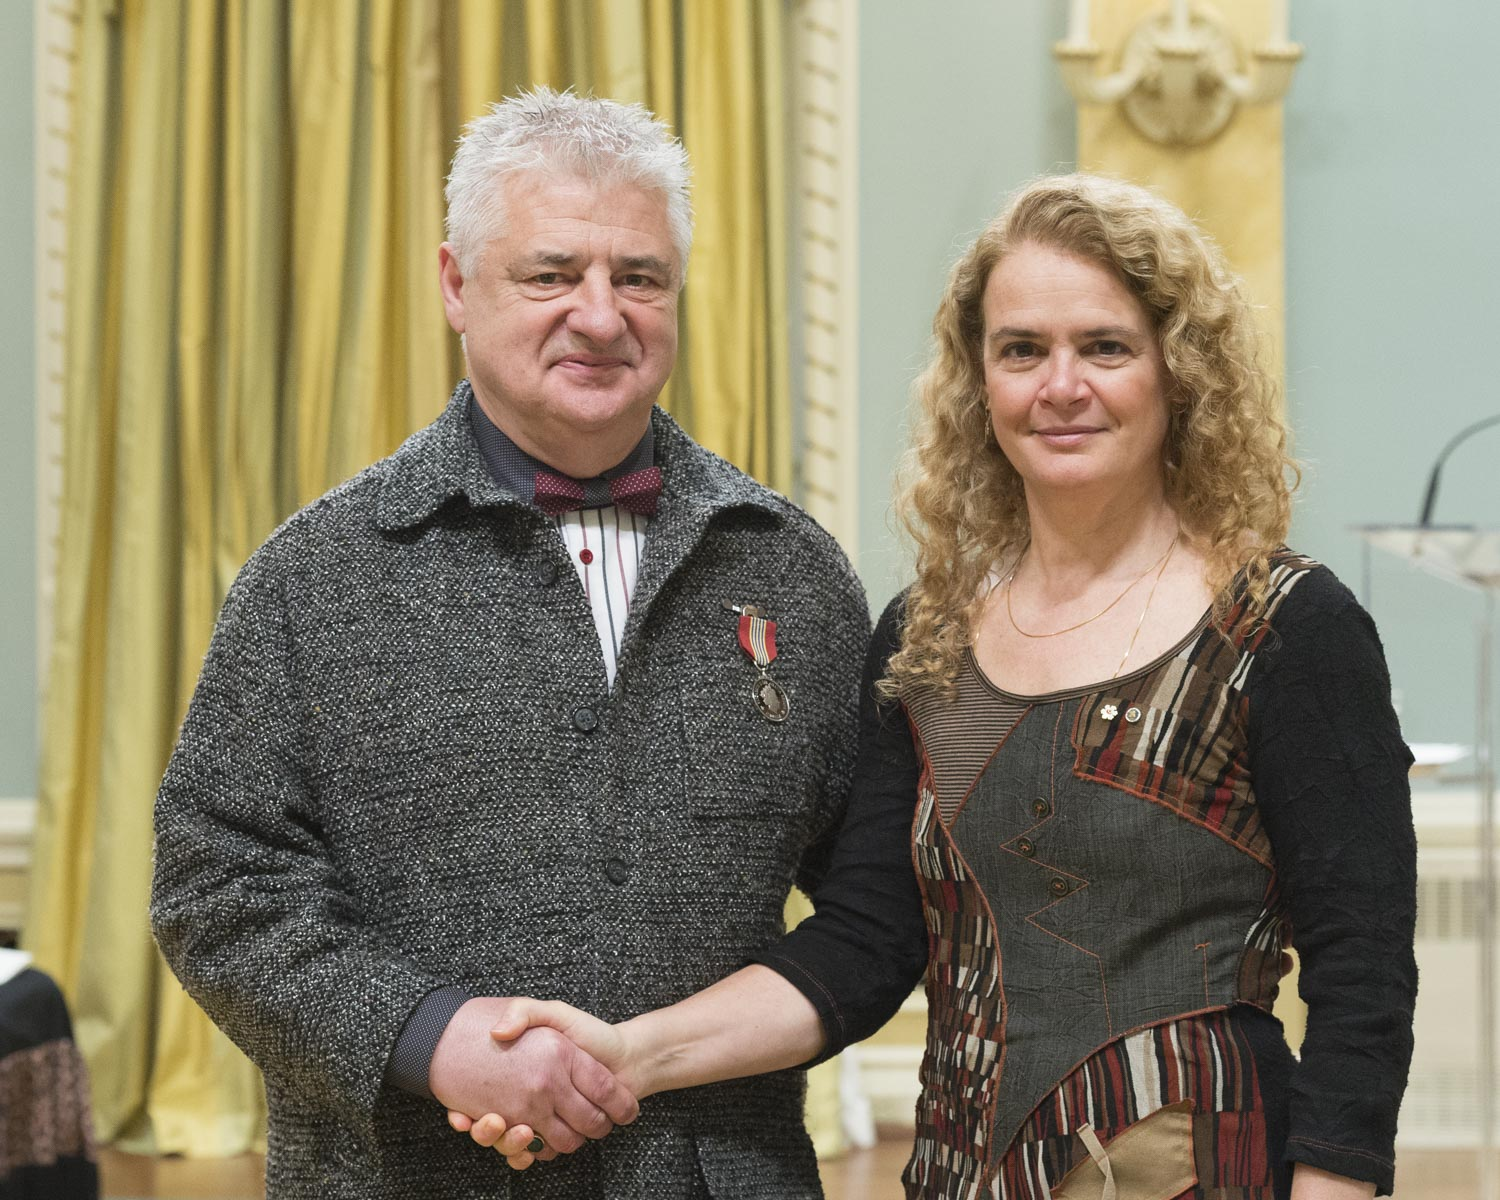 For 10 years, François Marion has served as board president of the Villa d'Accueil Sainte-Thérèse de Marionville, where he has led building enhancement projects and helped organize social events. Since 2011, he has also led a multi-community citizens' committee that promotes the interests of residents.